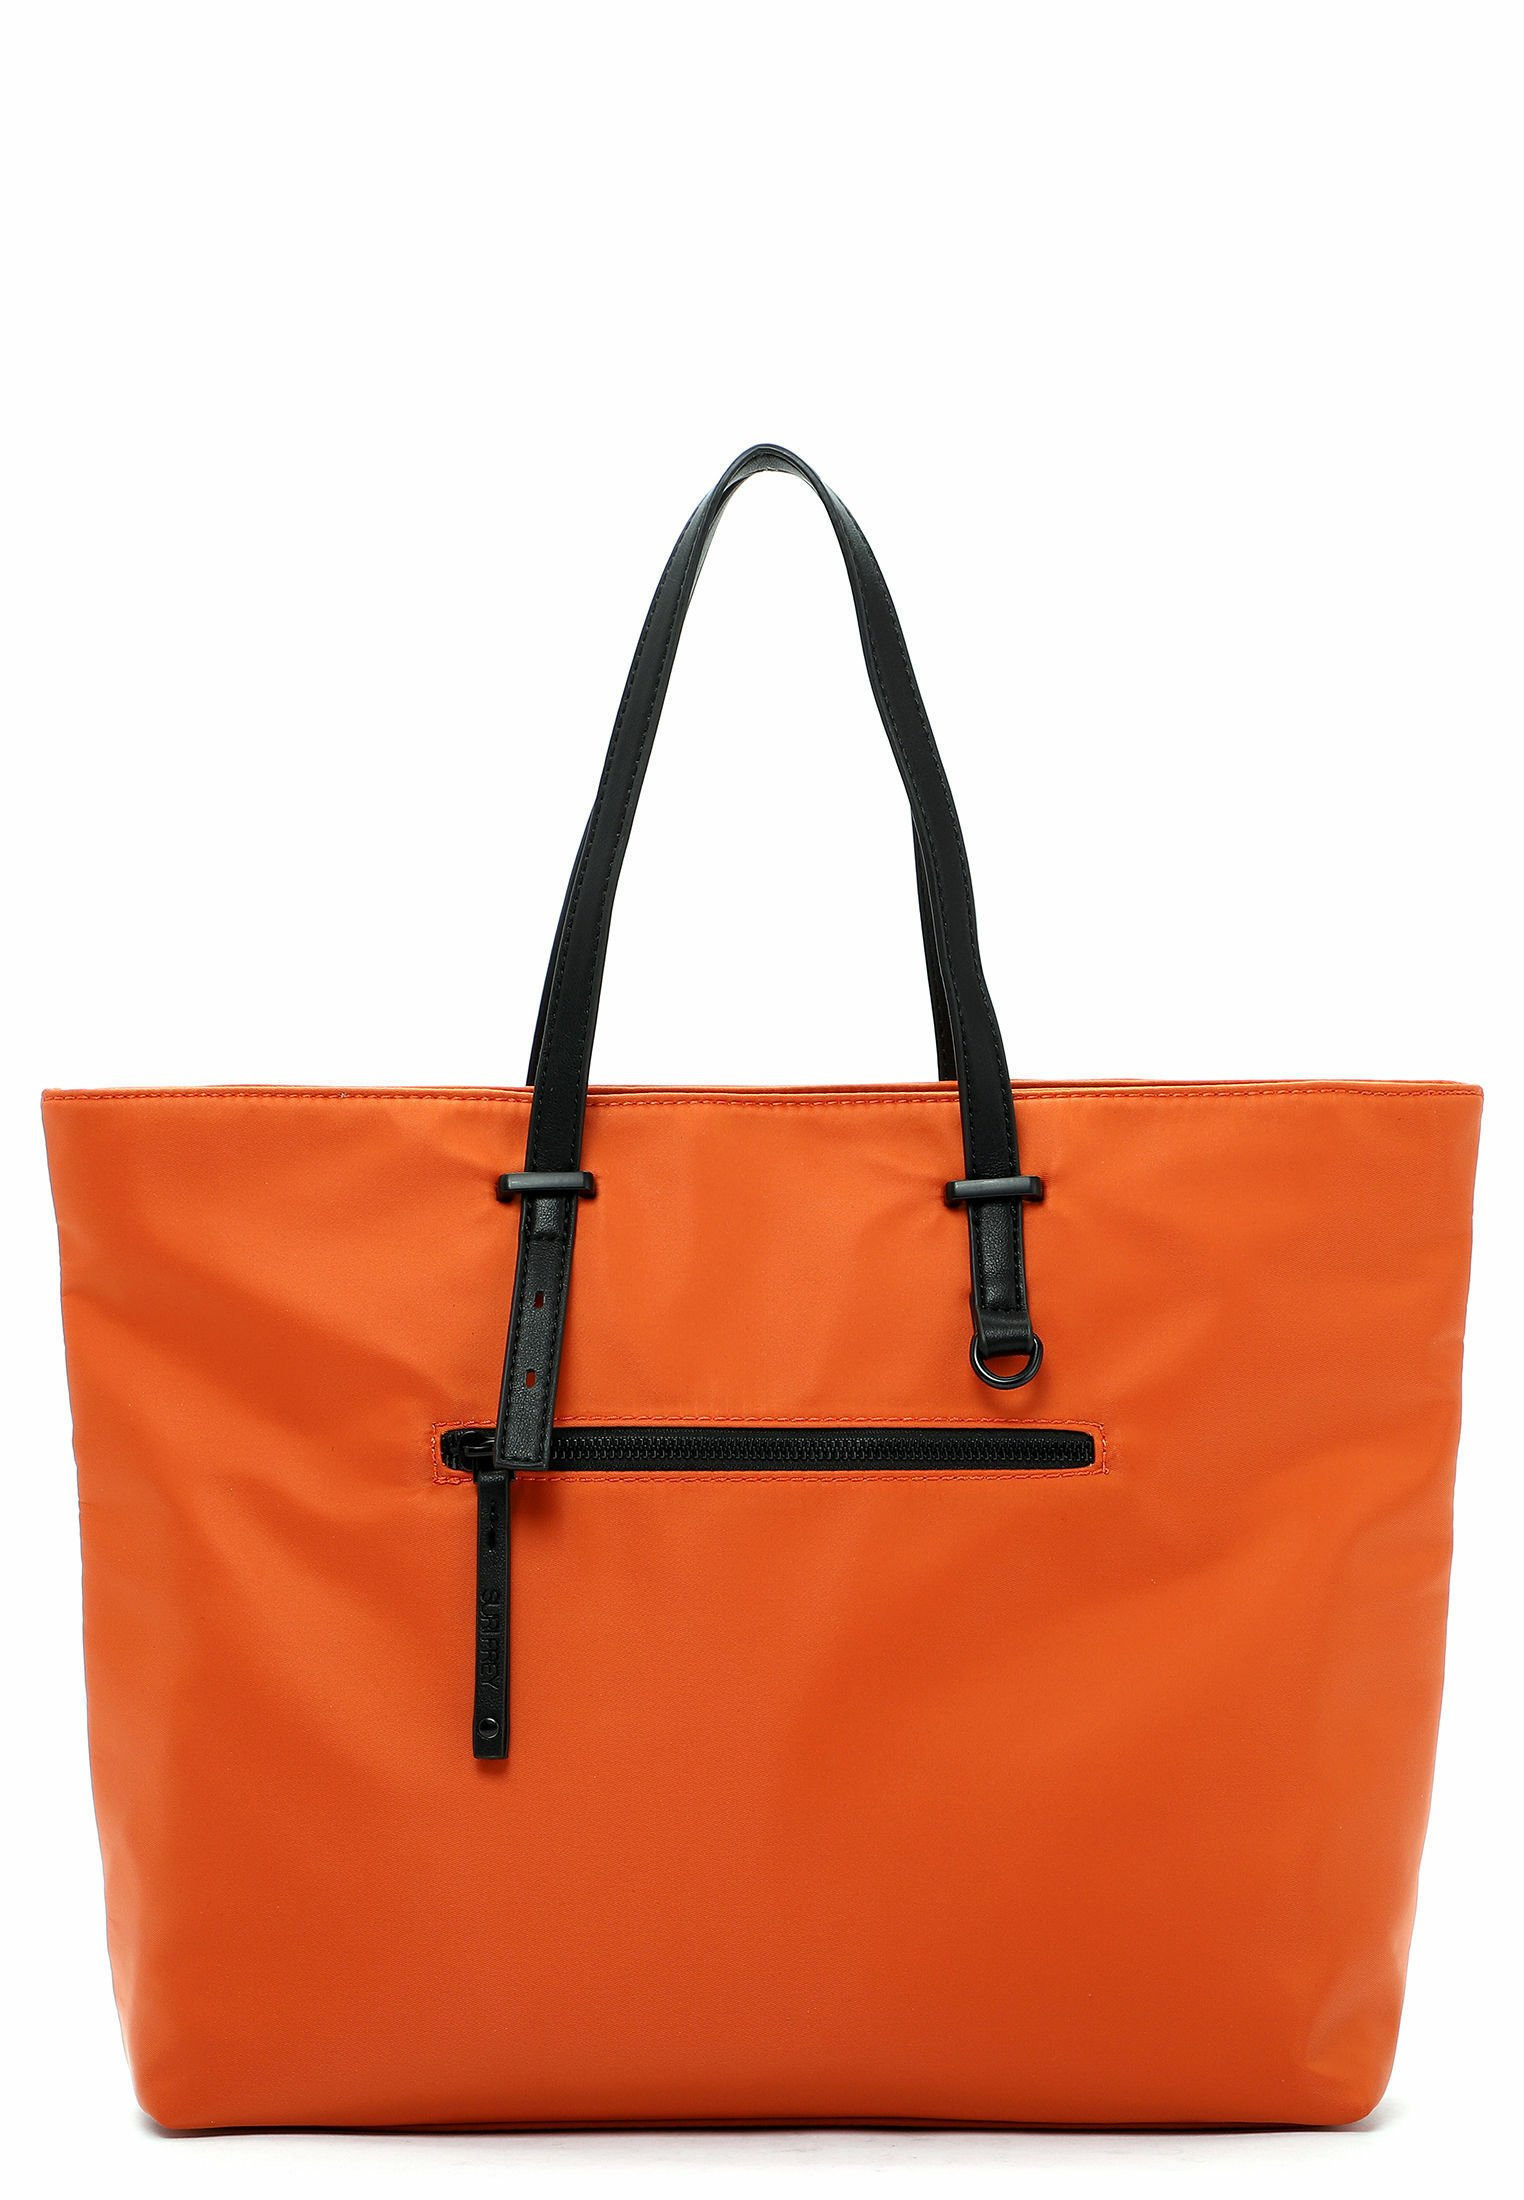 Suri Frey Black Label Tessy - Shopping Bag Orange 610/orange